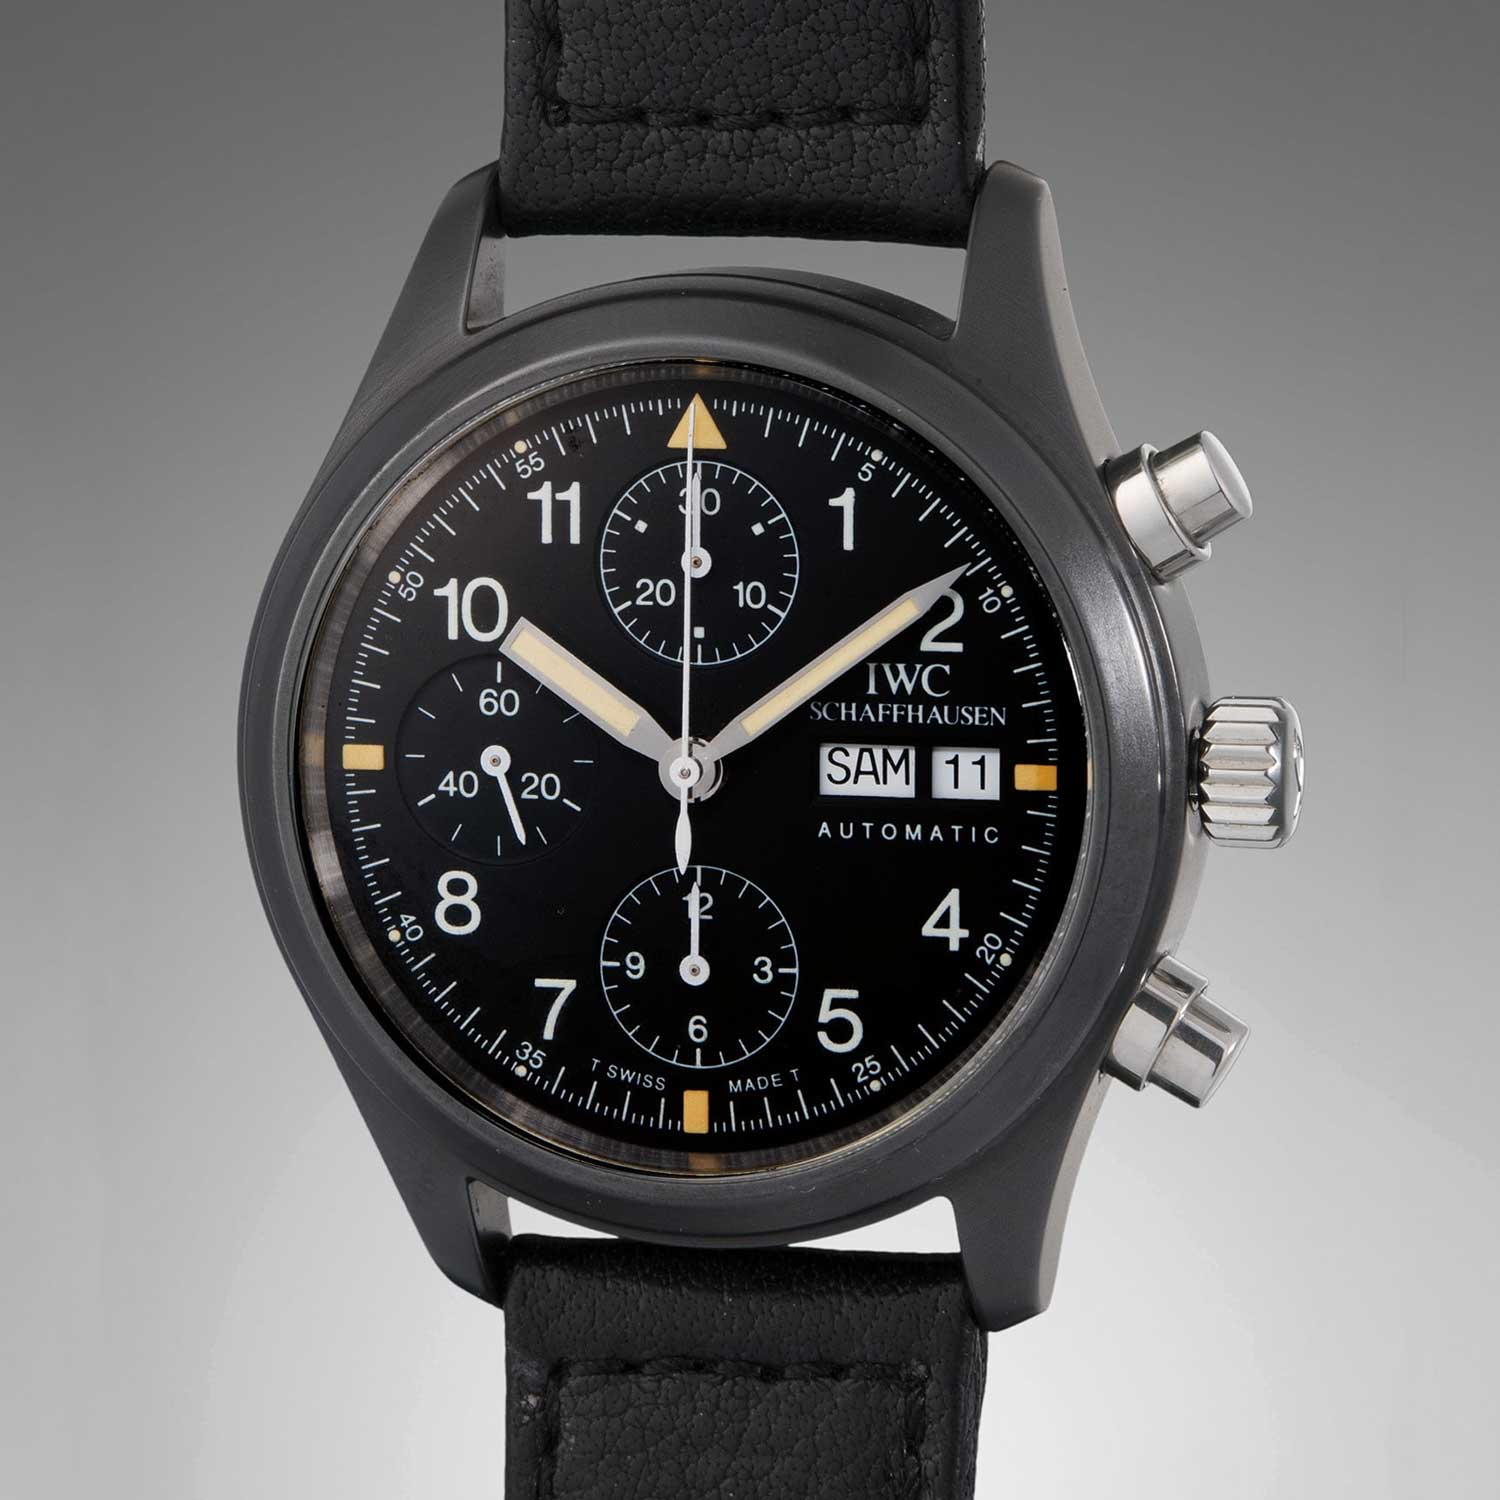 Blümlein purchased a ref. 3705 as a gift for his wife in 2001 and the watch fetched a staggering USD 53,750 at Phillips in 2018. (Image: Phillips Watches)